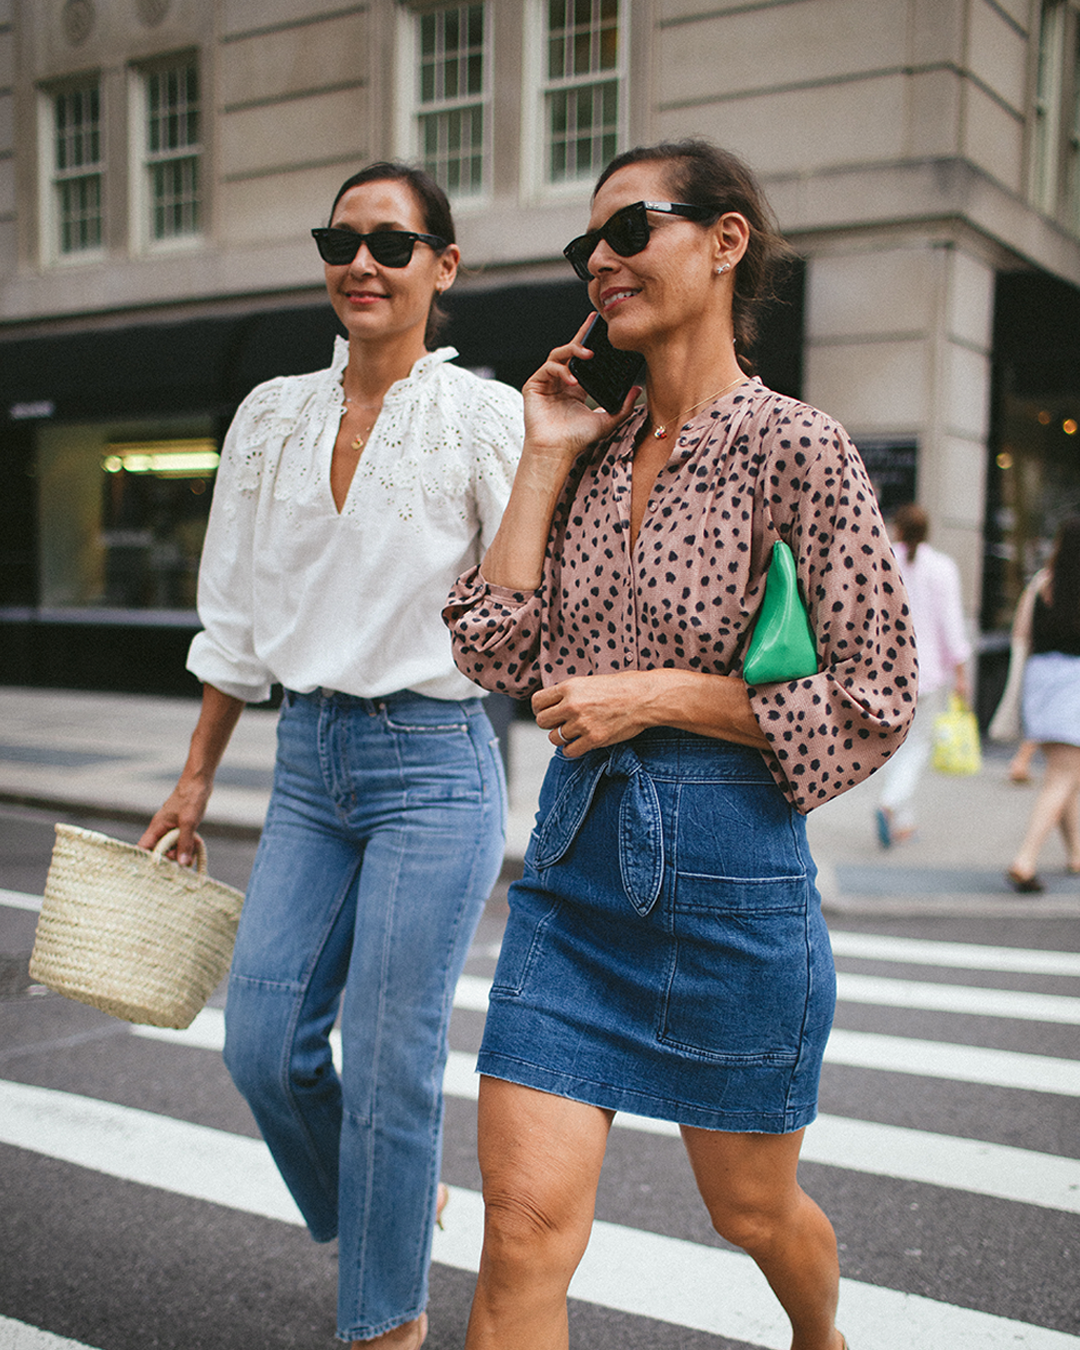 Wear Now, Wear Later: Rentmeester Sisters